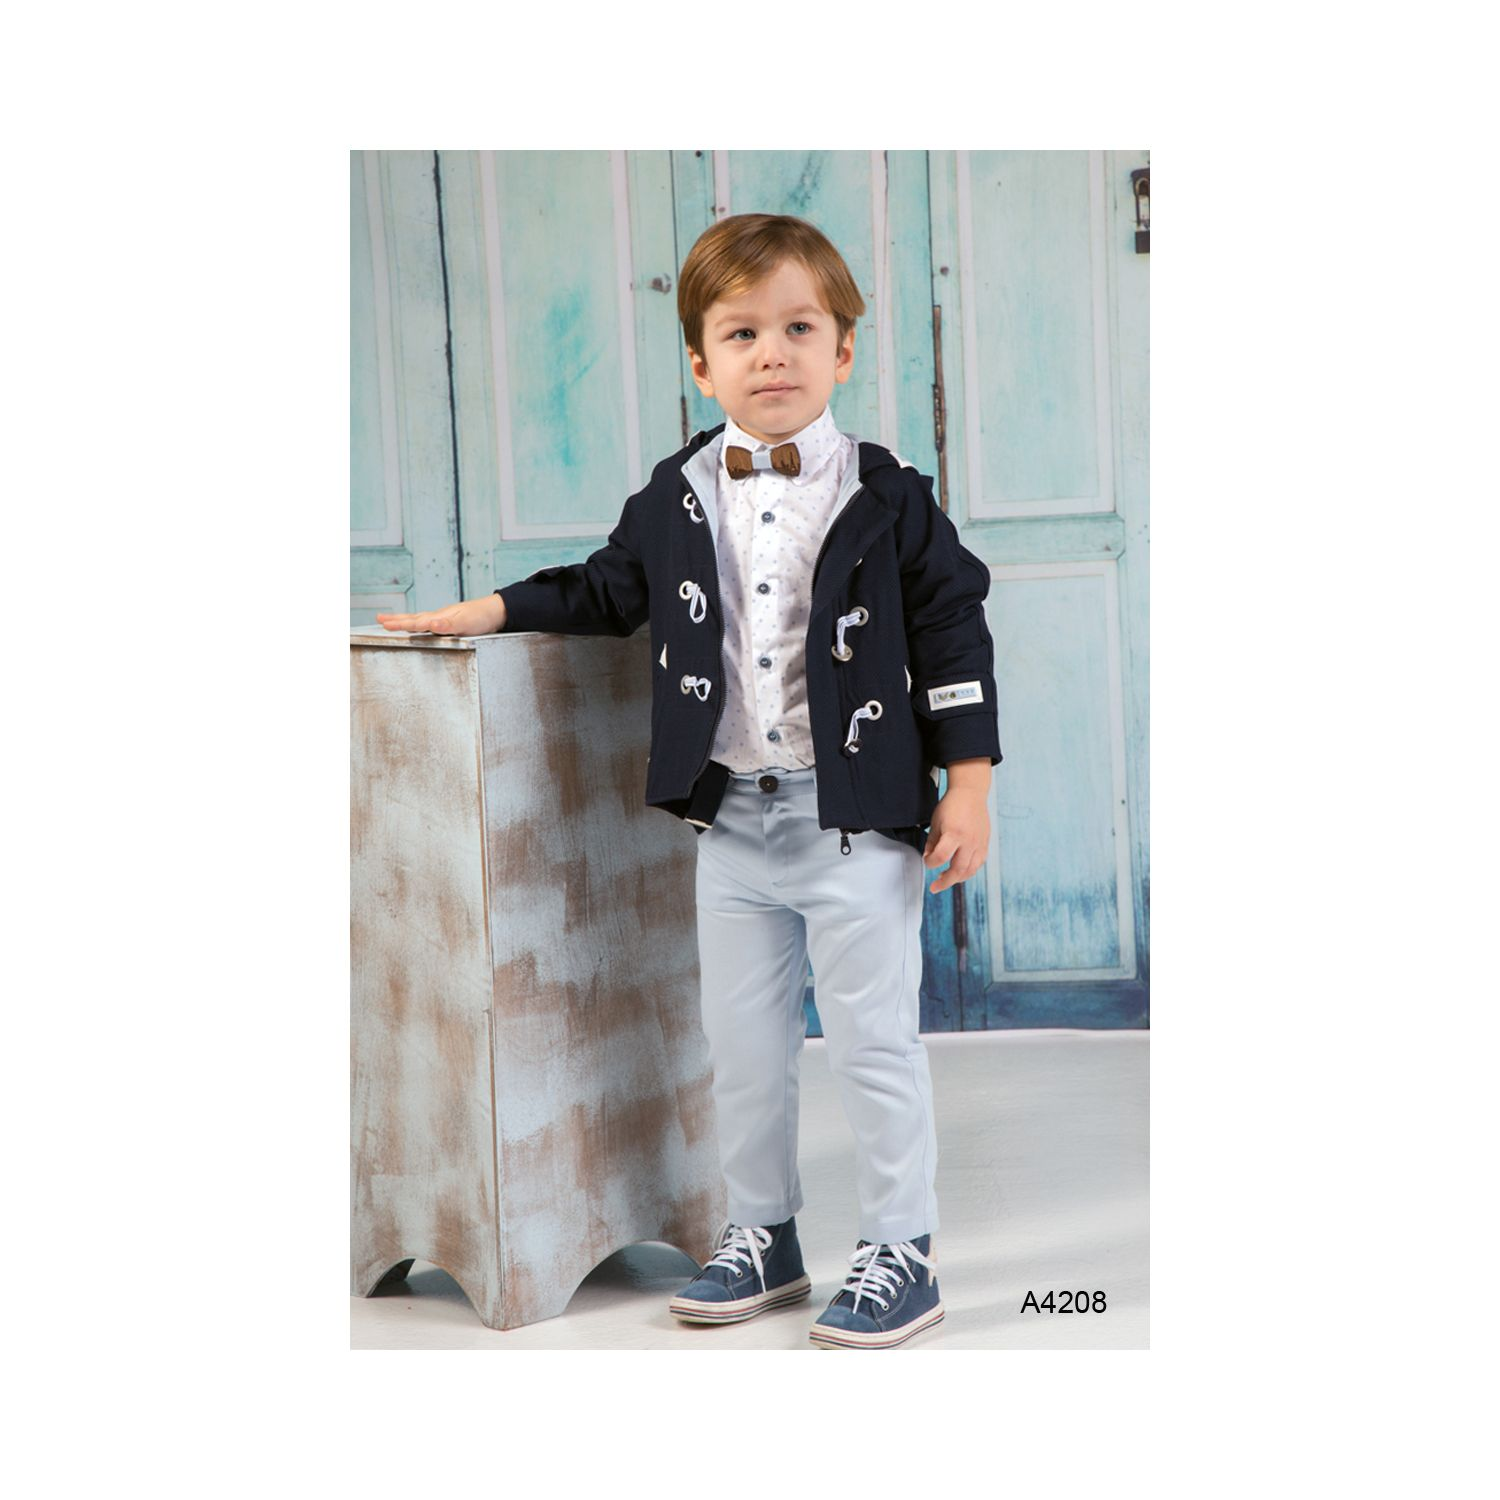 Christening suit with jacket for boys A4208